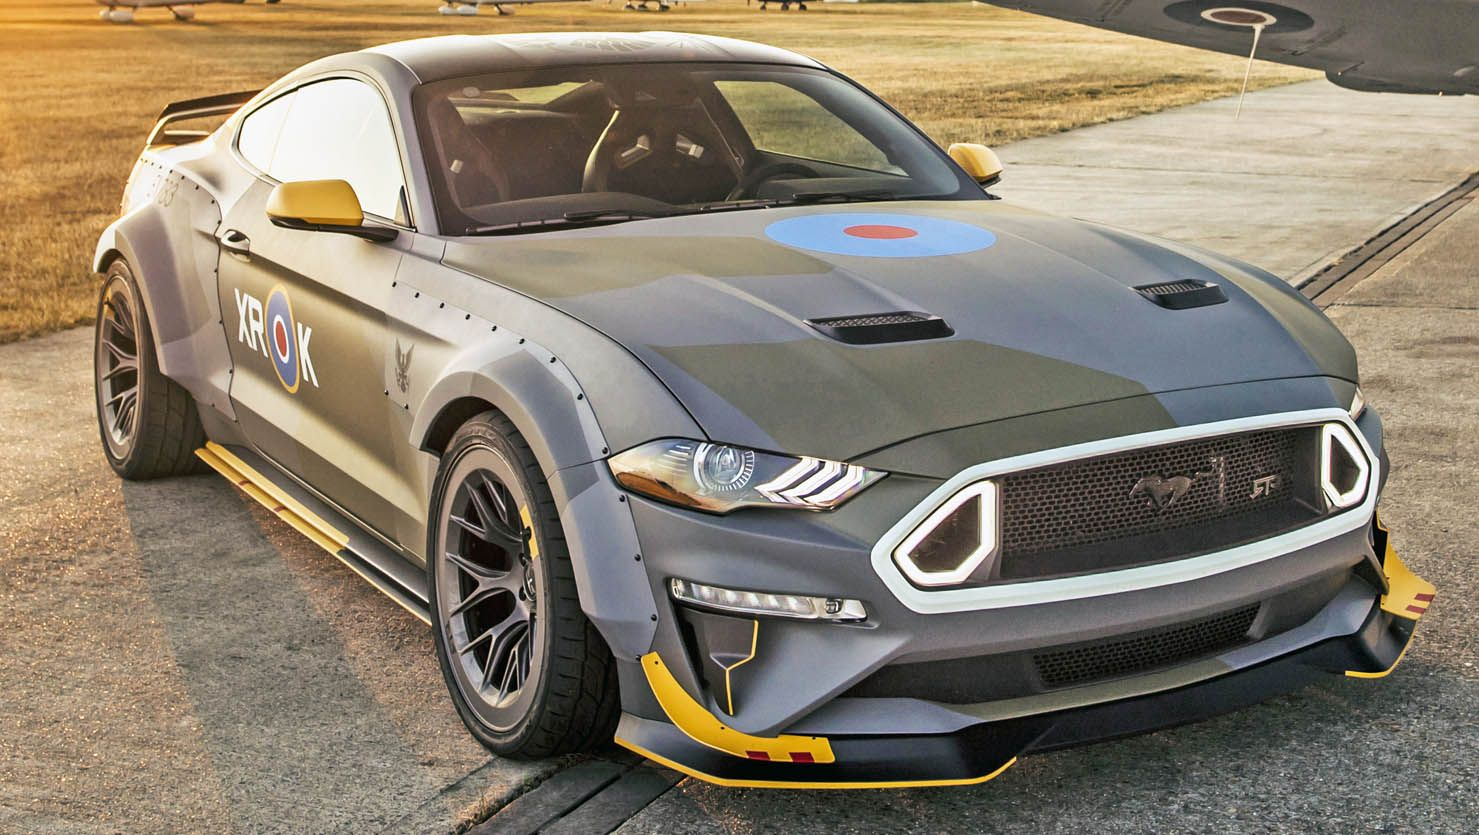 Pin By Wheelzme On Wheelzme Ford Mustang Ford Gt Ford